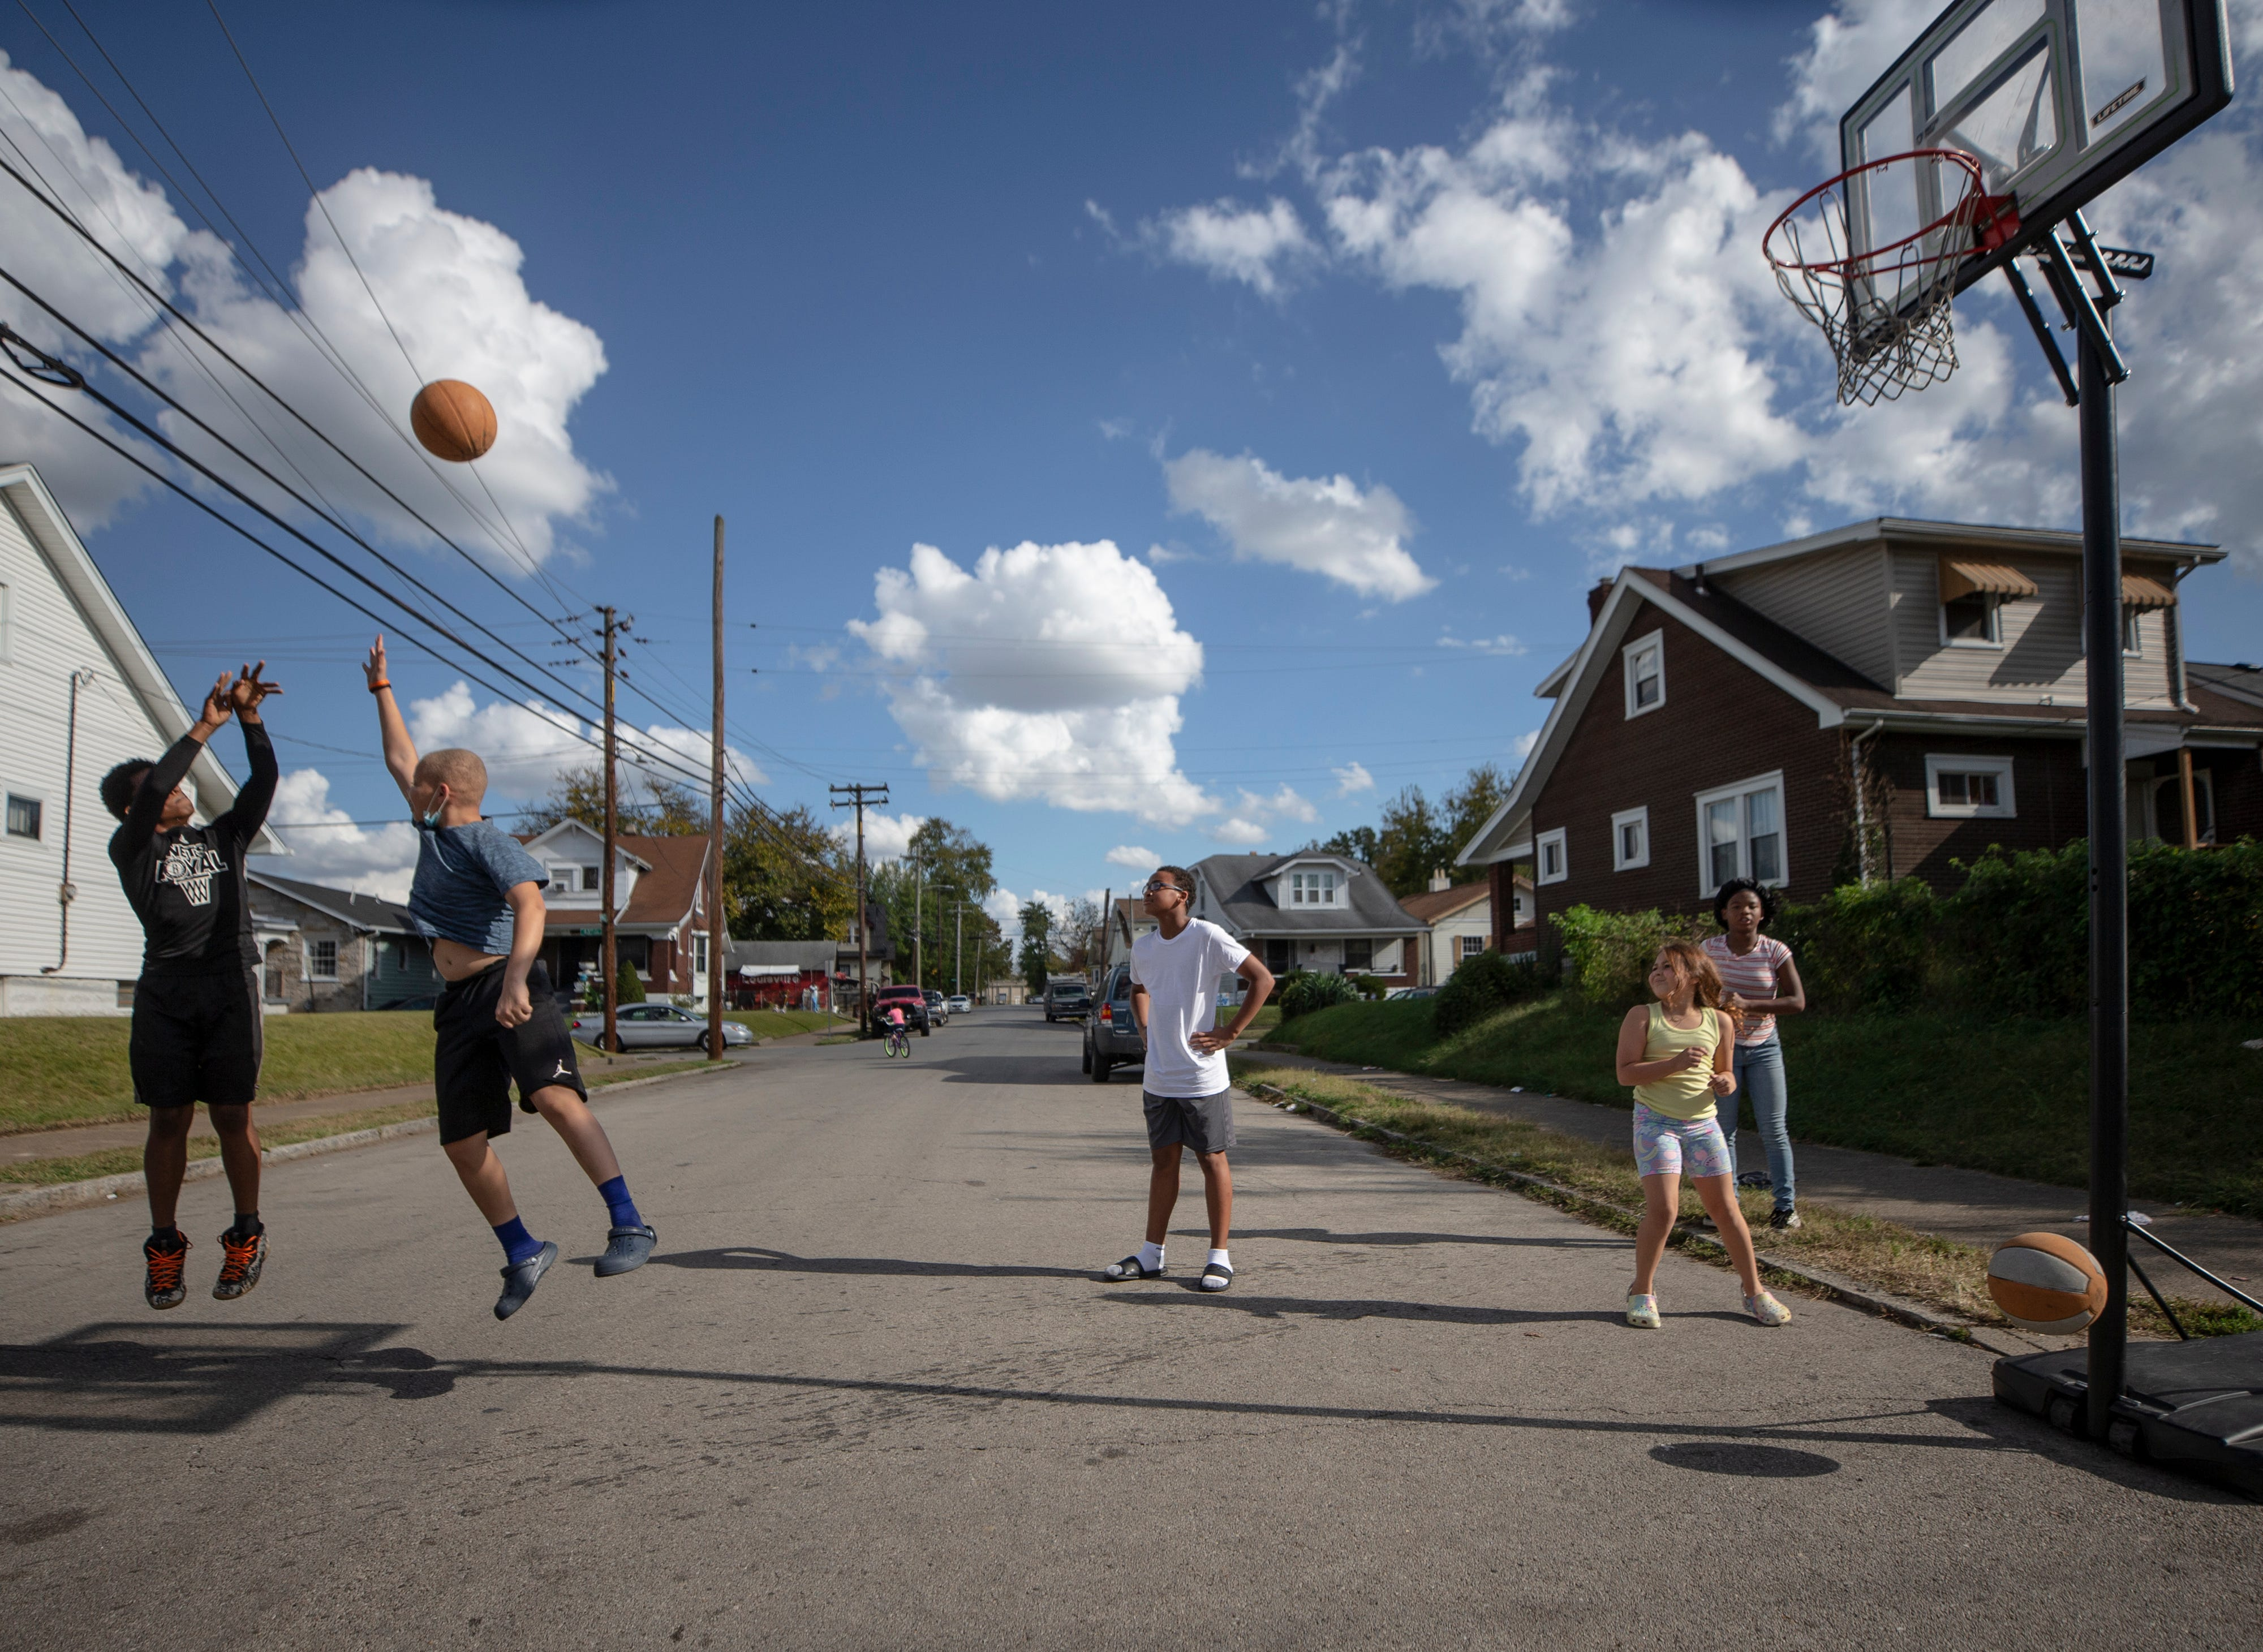 Chris Miller, 13, right, gets off a shot against Kentrelle Bell, 13, while playing basketball on Herman Street in Louisville's Shawnee neighborhood on Oct. 22, 2020.